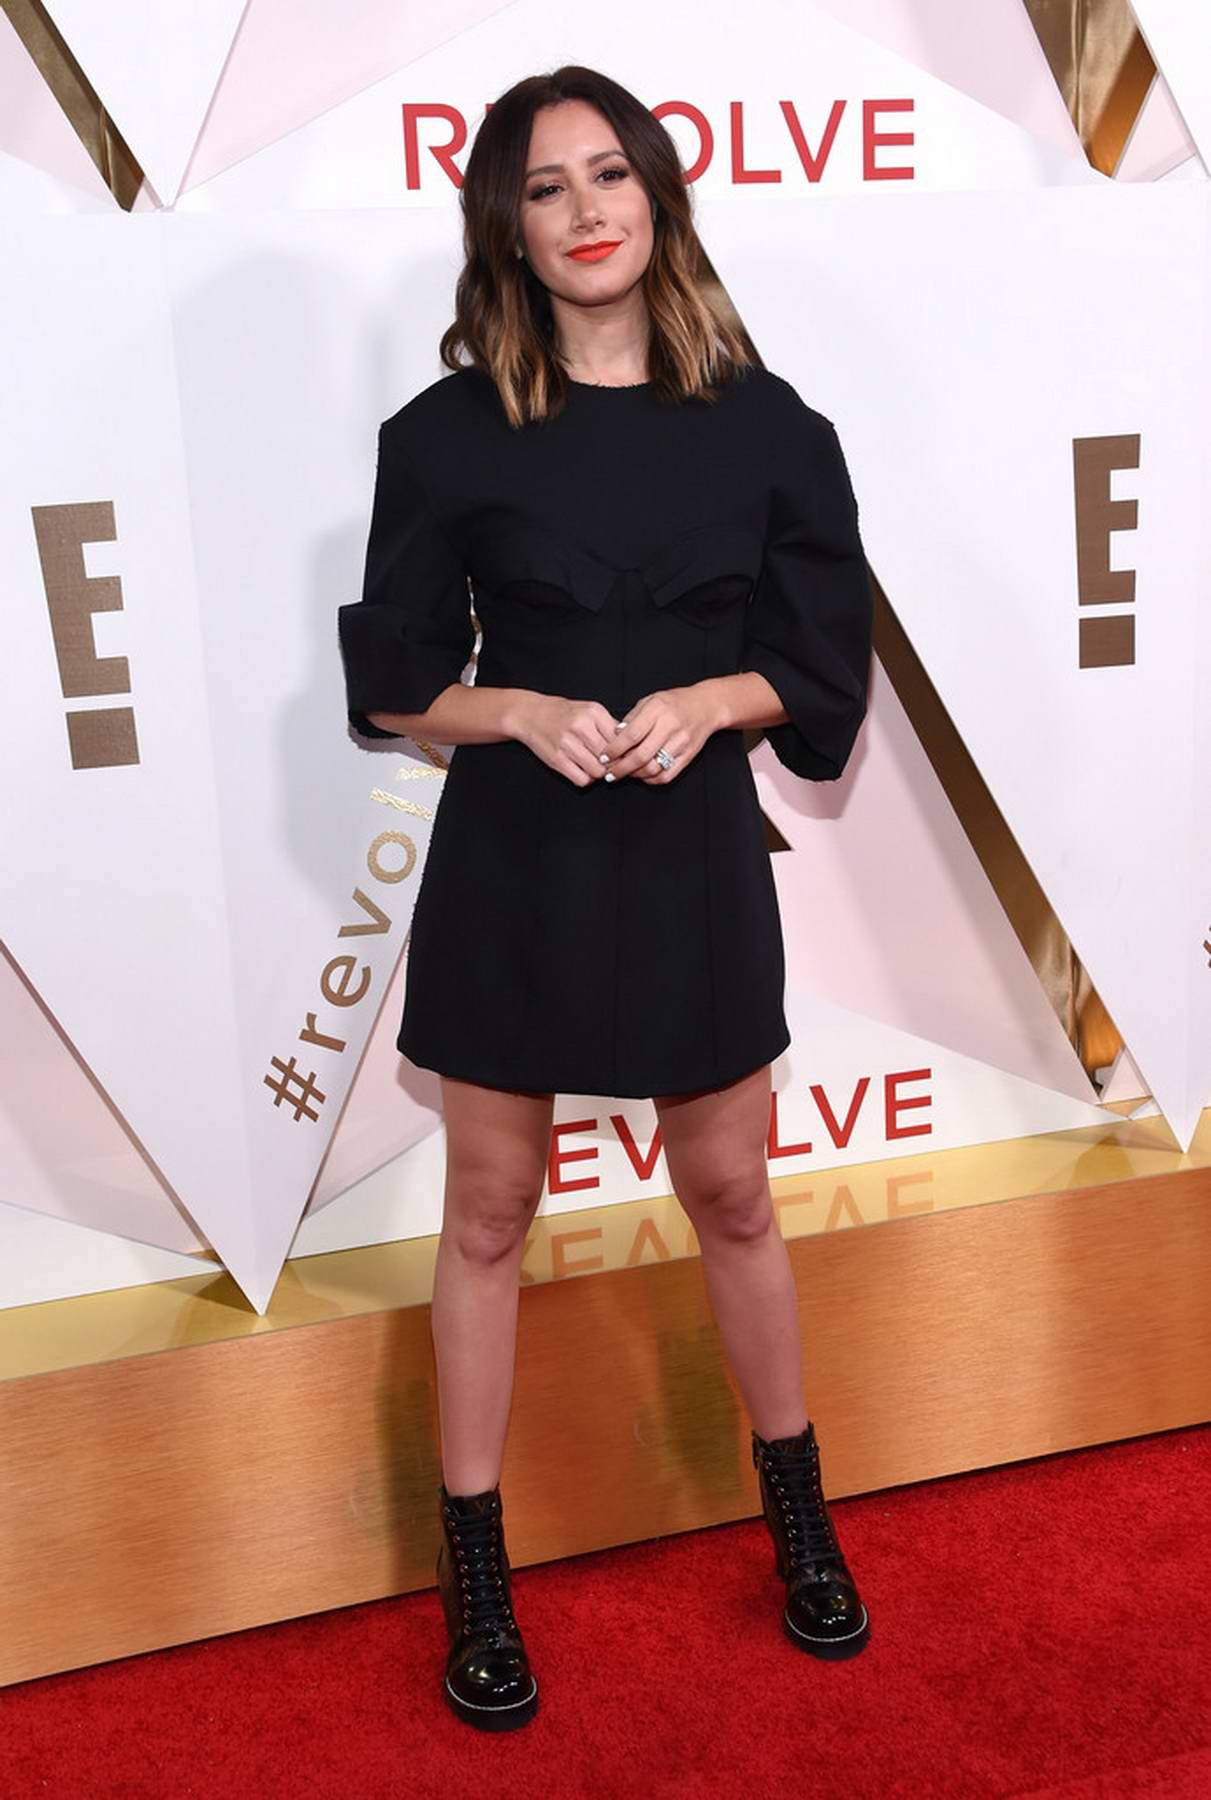 Ashley Tisdale at 2017 Revolve Awards in Los Angeles